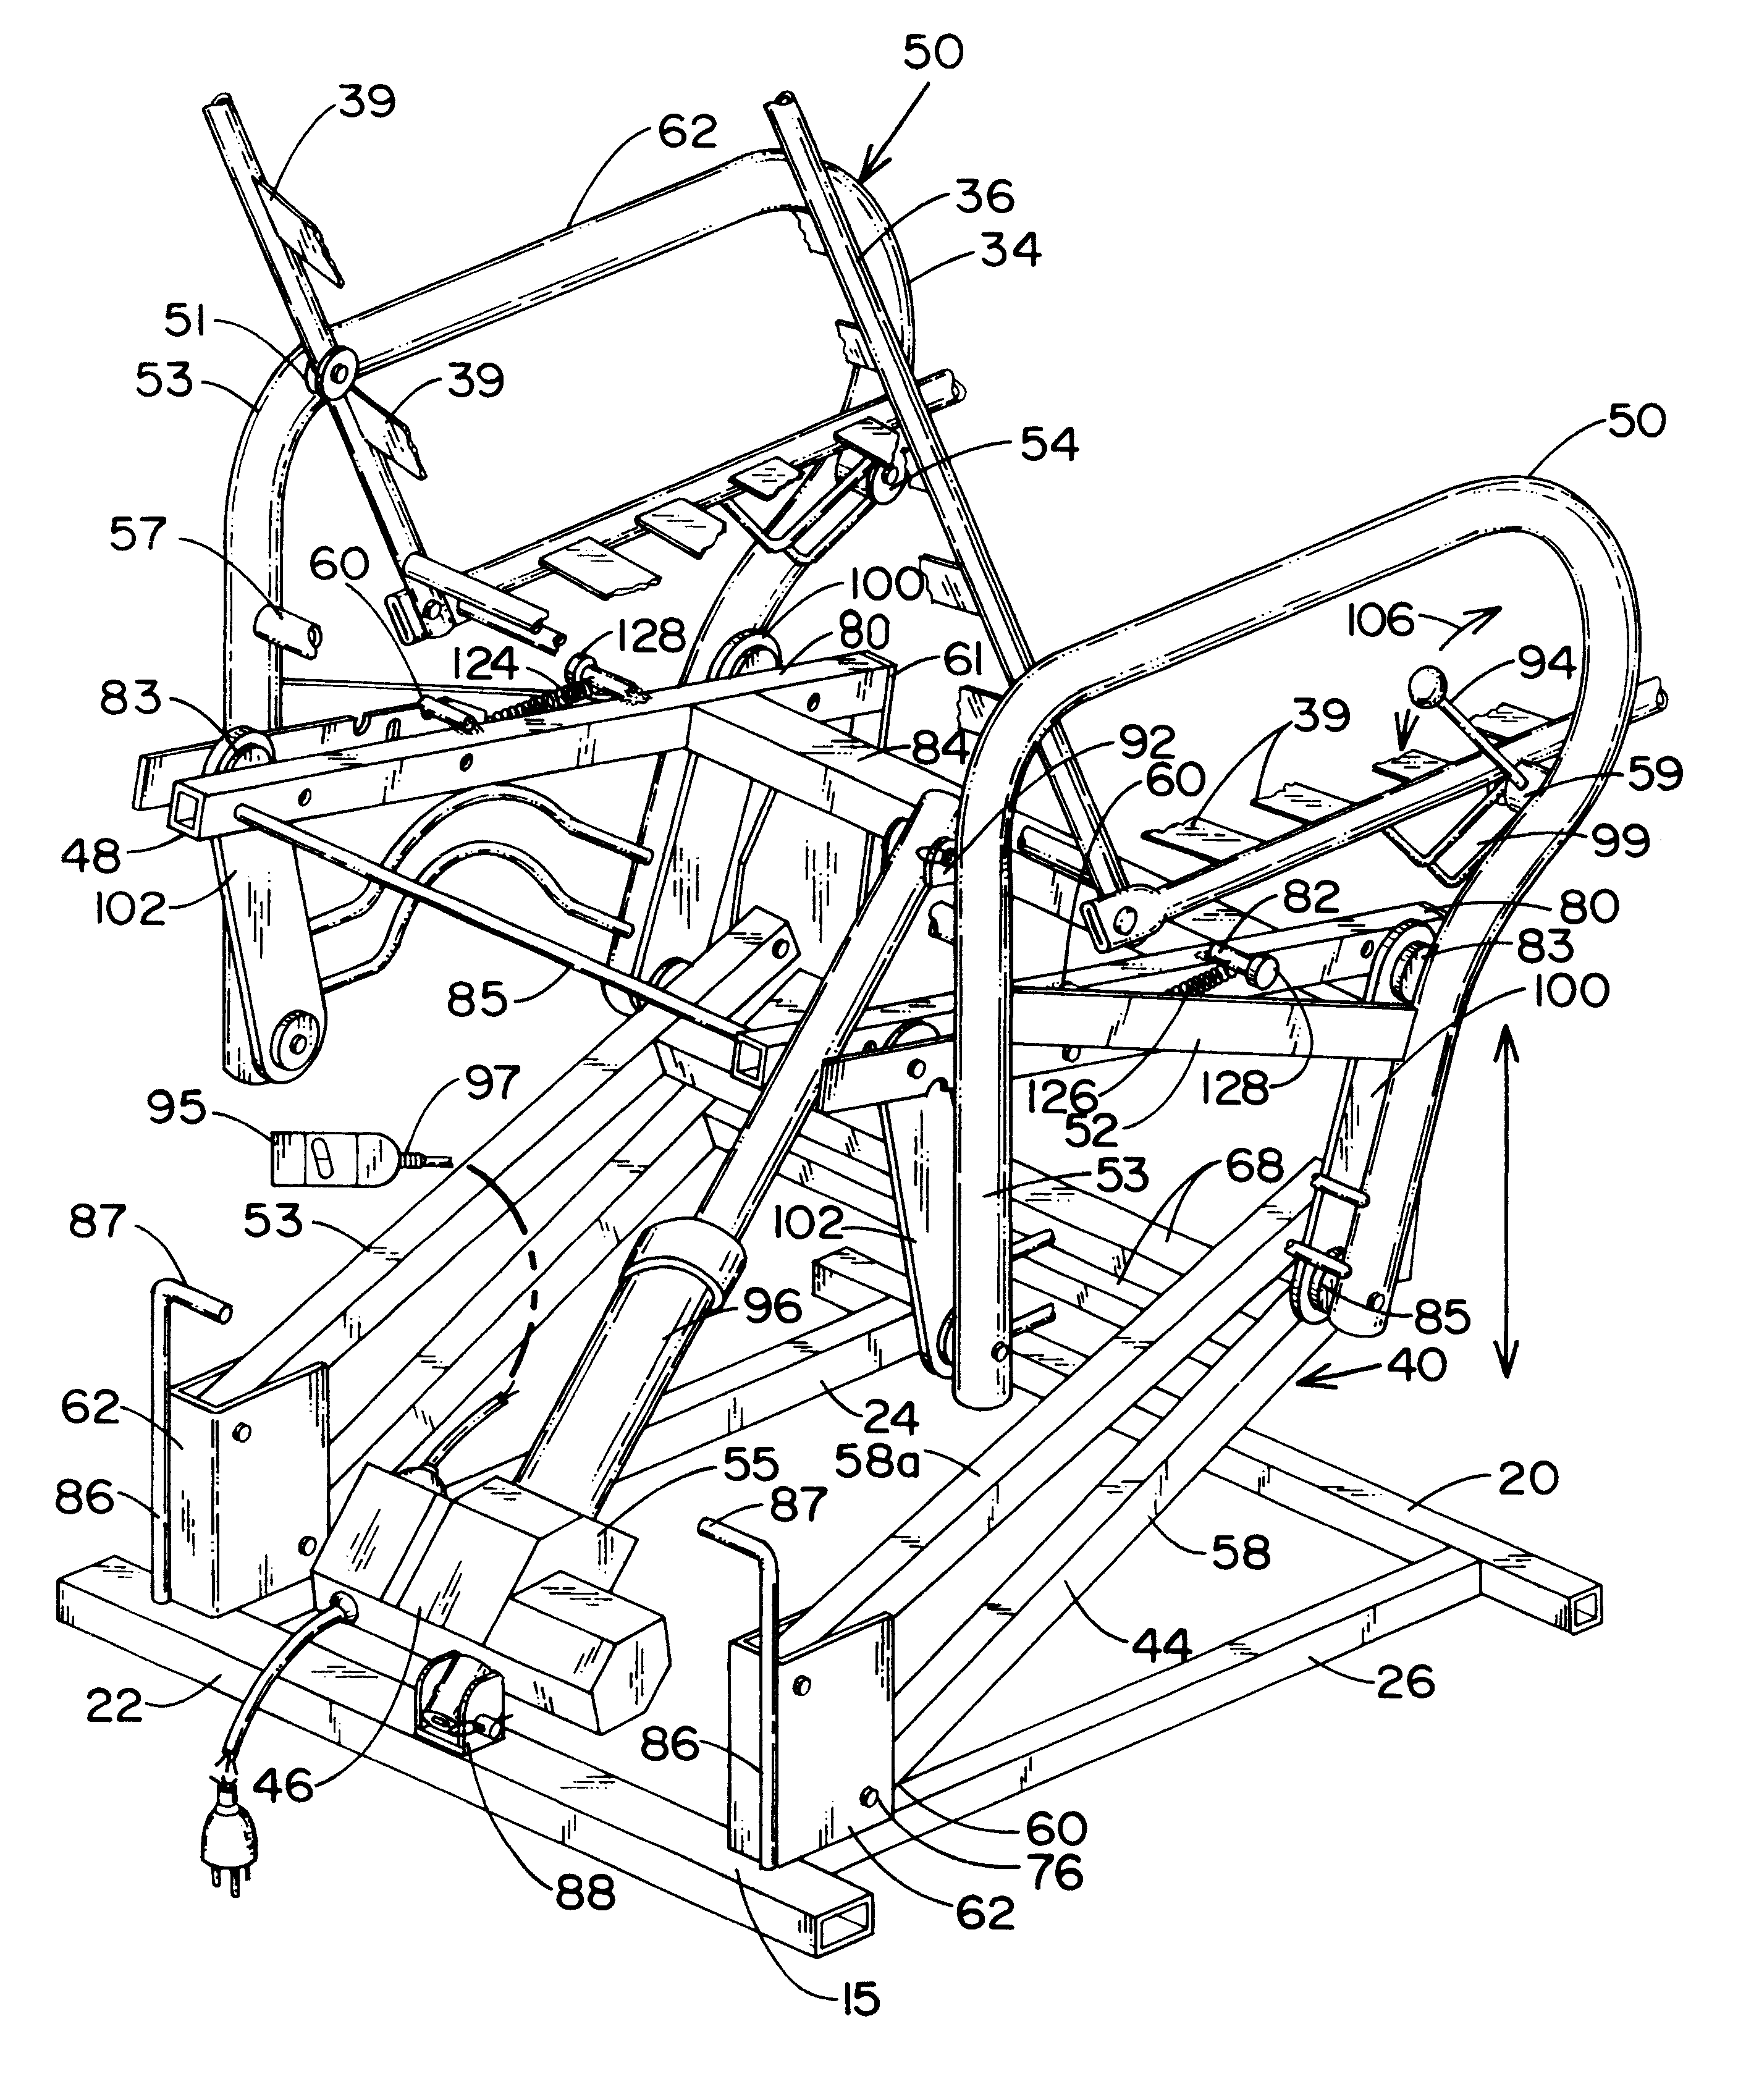 Patent US Lift chair Google Patents